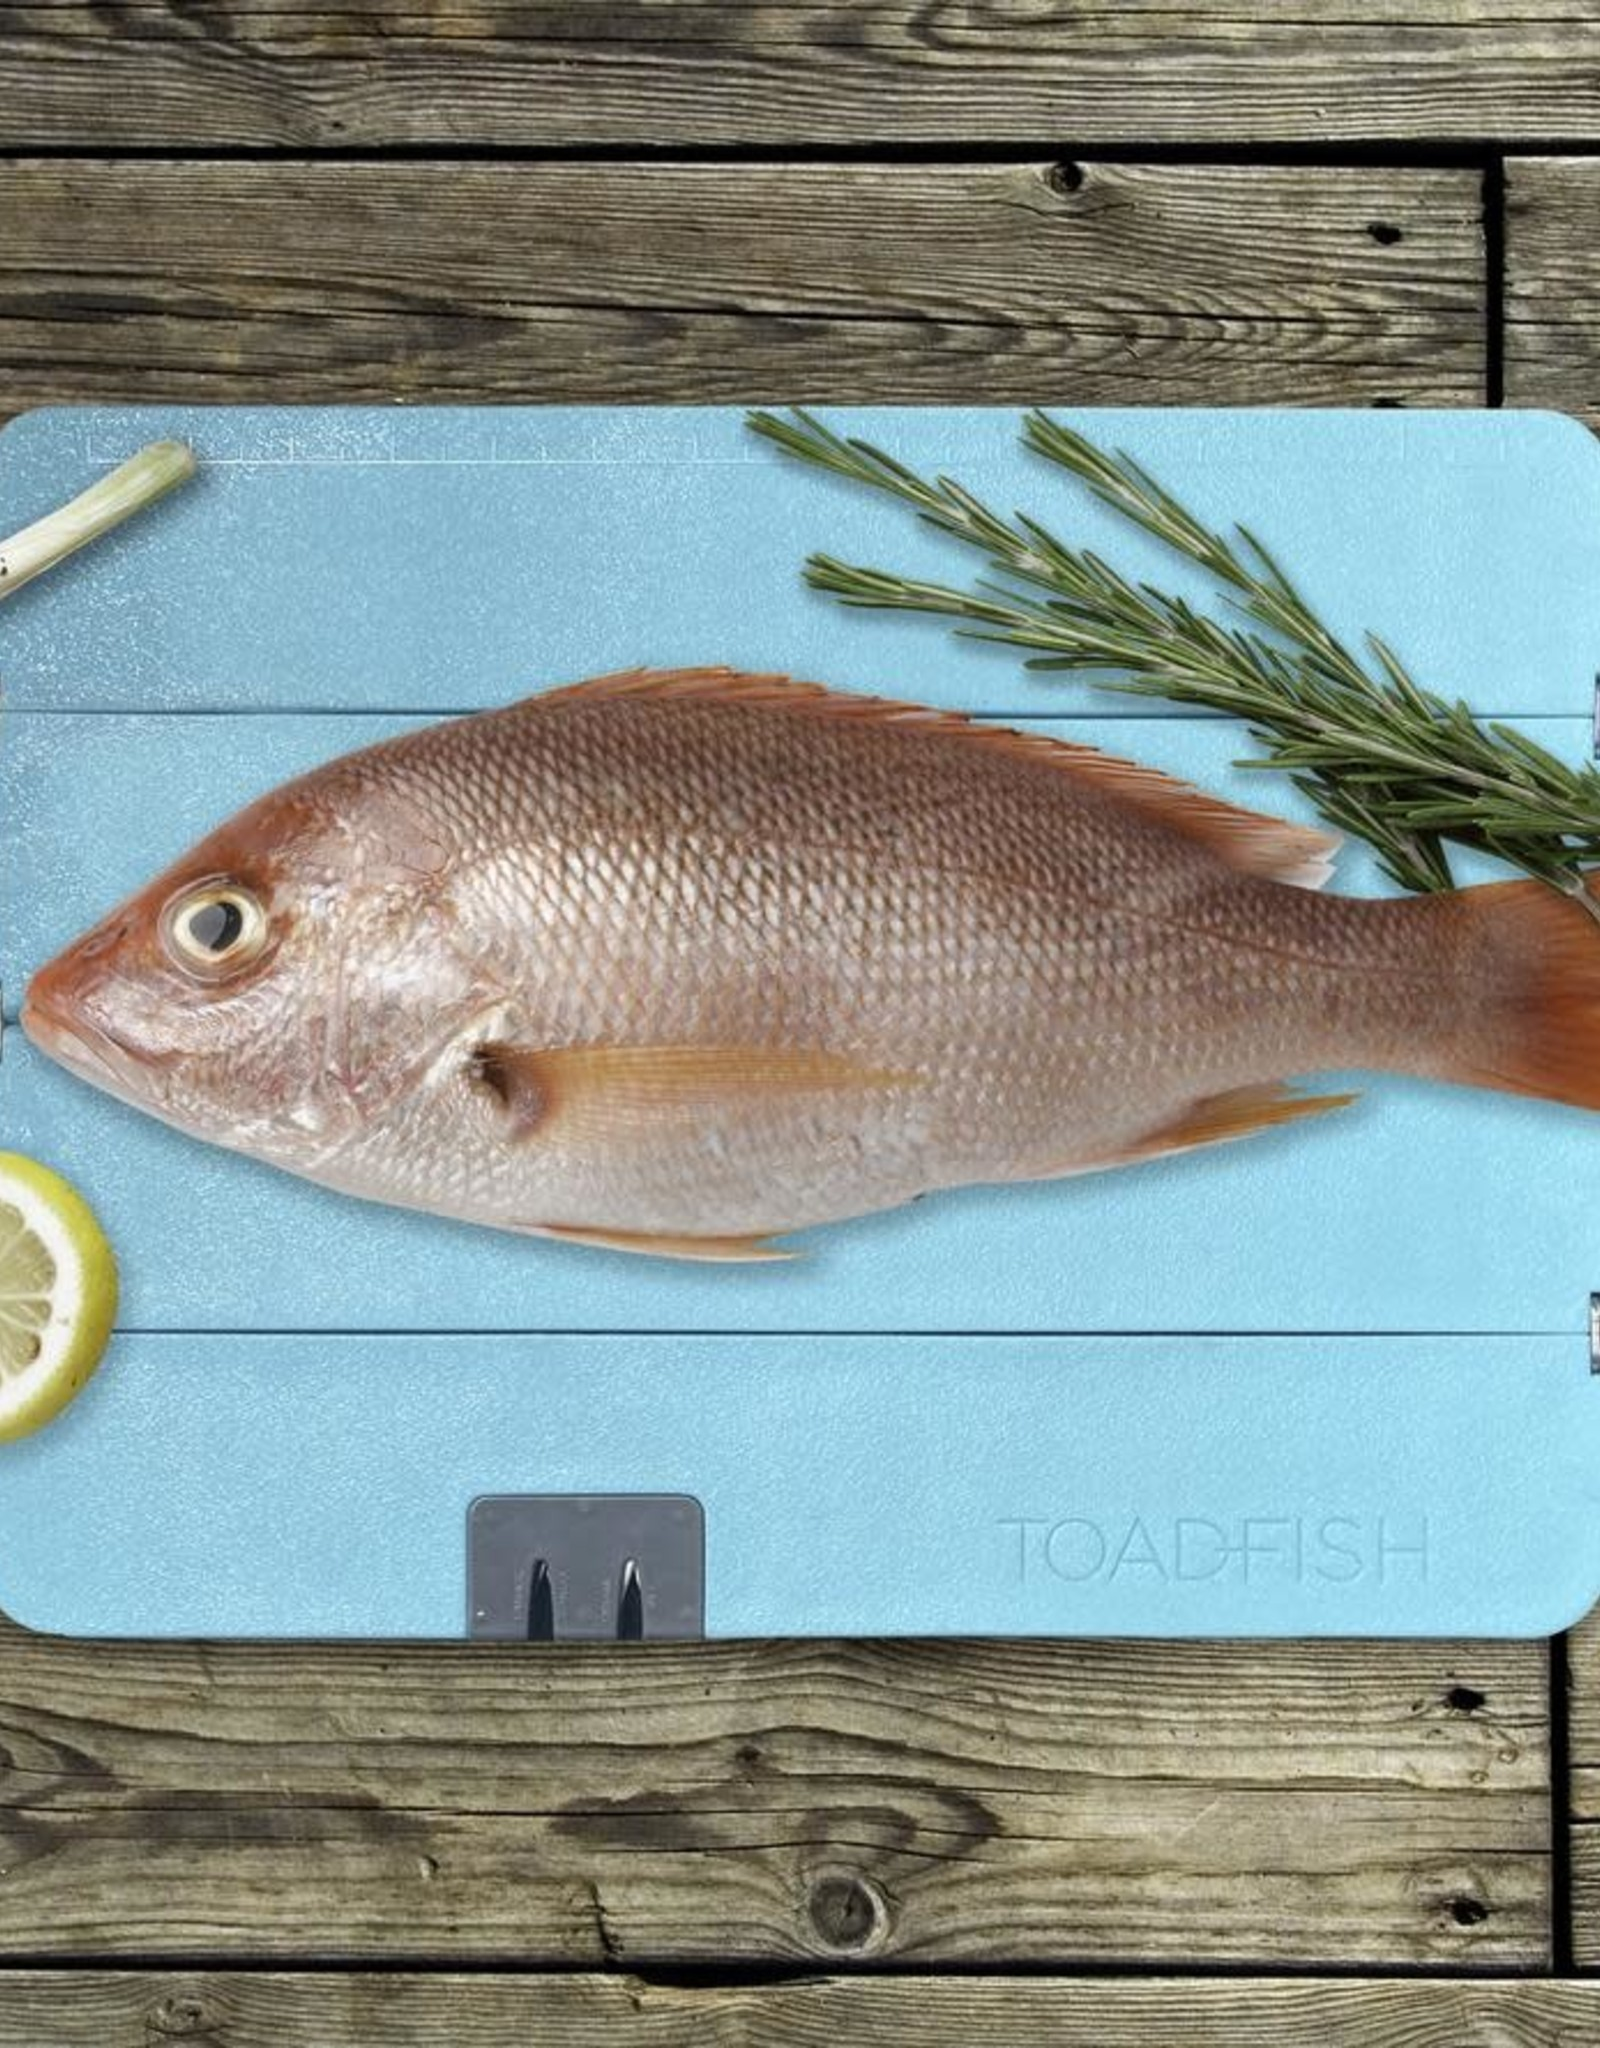 Toadfish Toadfish Folding Cutting Board with Built In Knife Sharpener - Teal